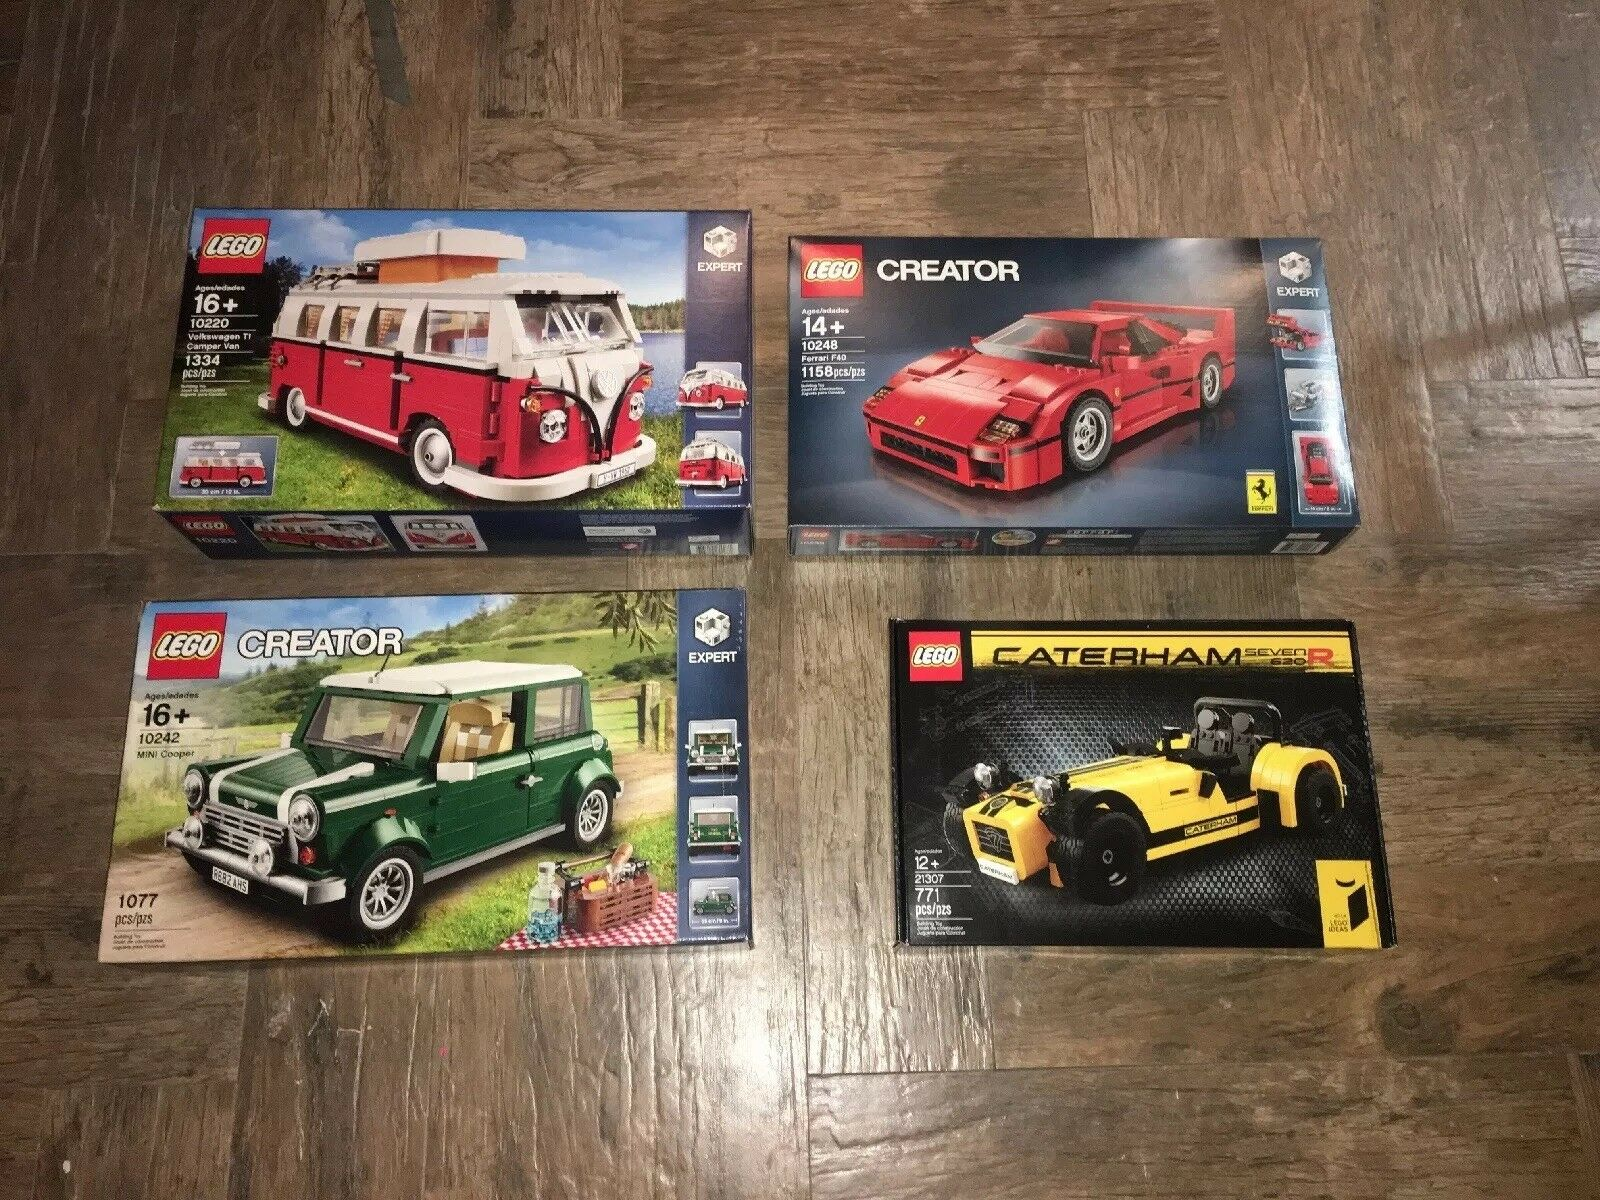 Lego creator Expert Set Of Of Of Four 10248, 10220, 10242, 21307 5f8a04